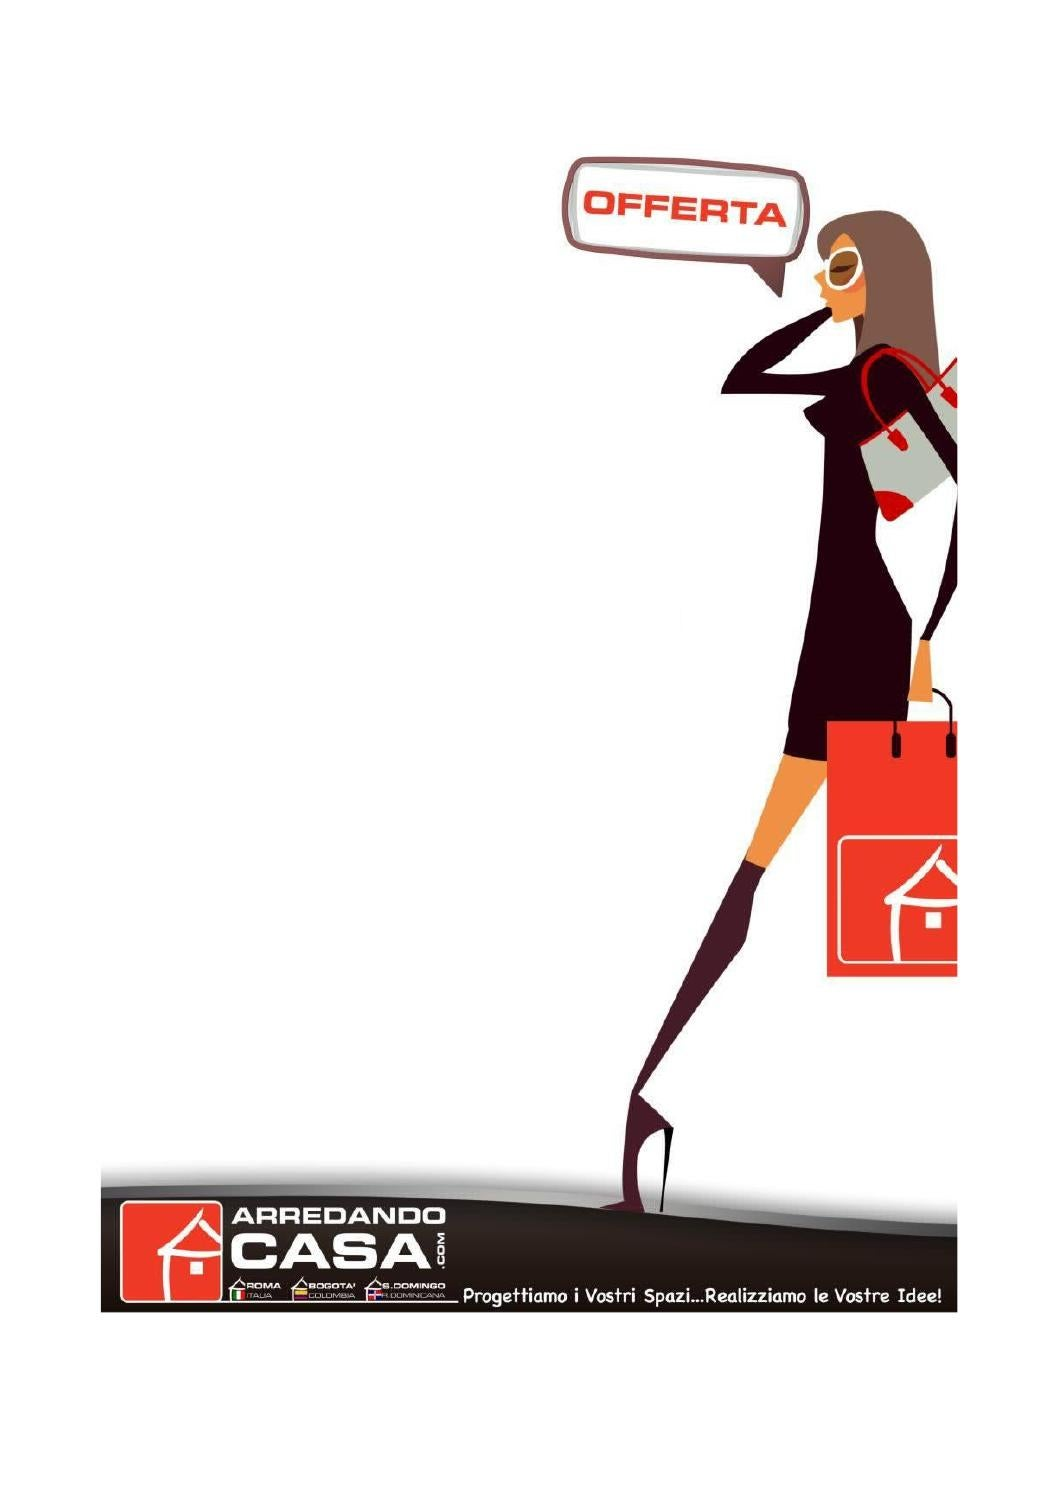 Promo arredando casa by davide russo issuu for Arredando casa